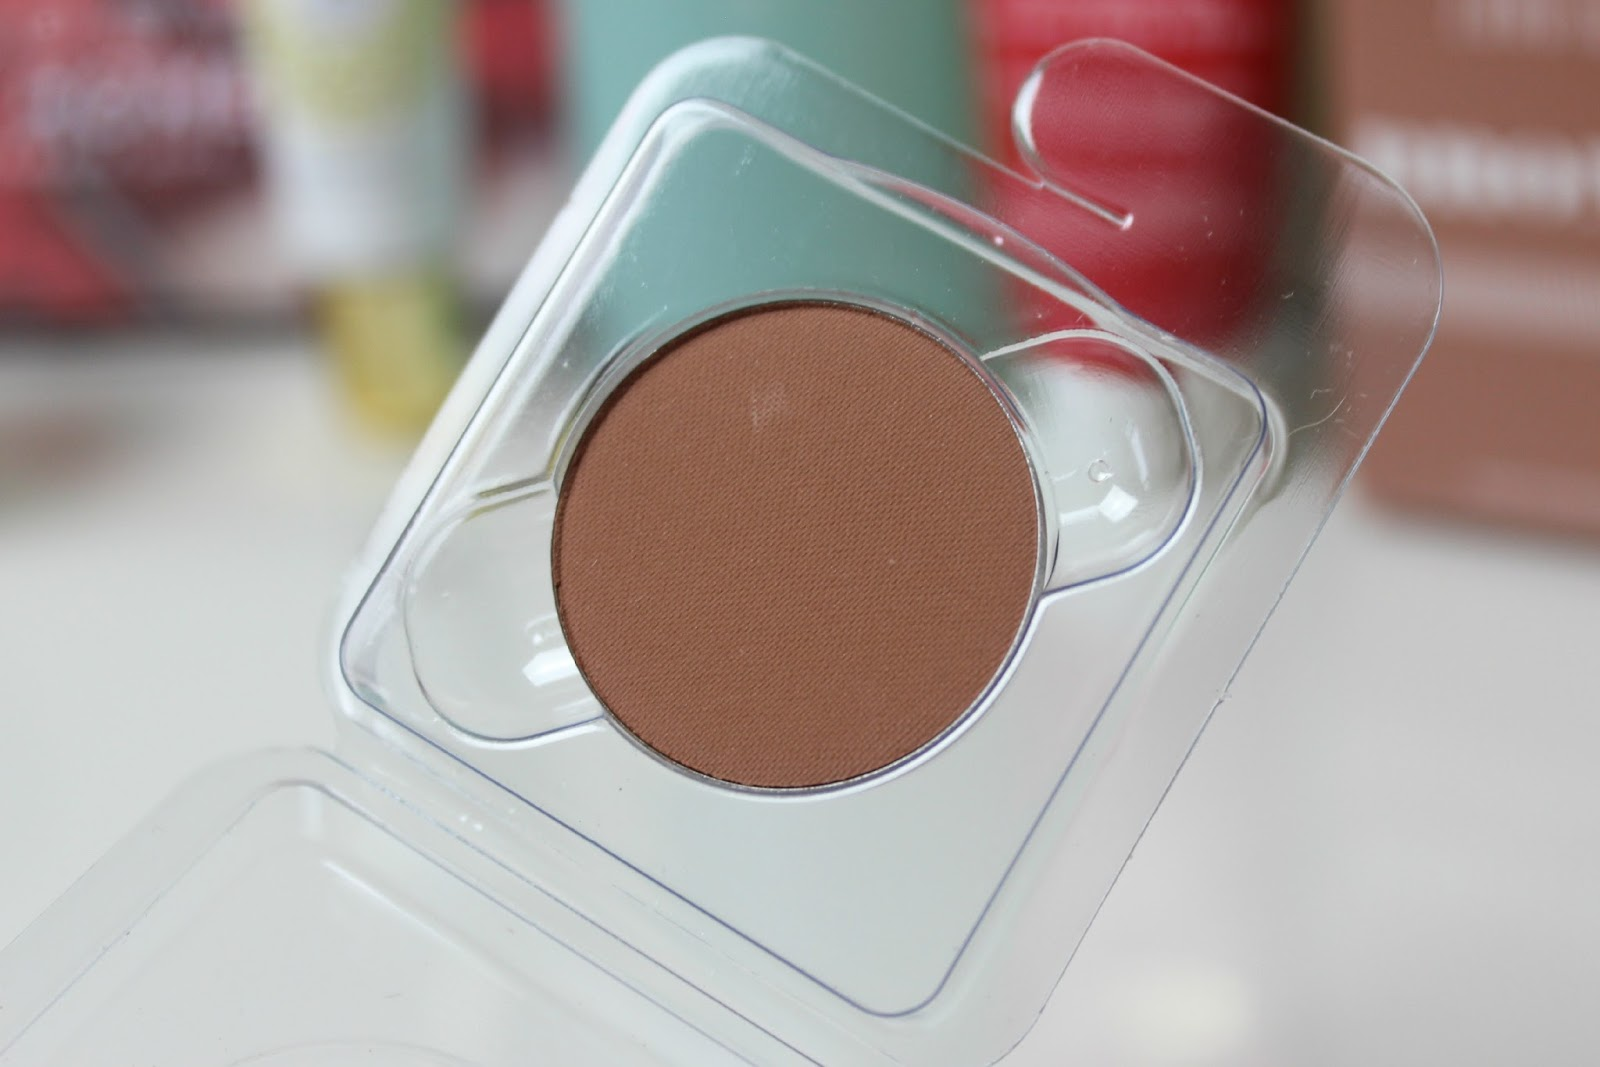 A picture of the Lord & Berry Bronzer in Sunny